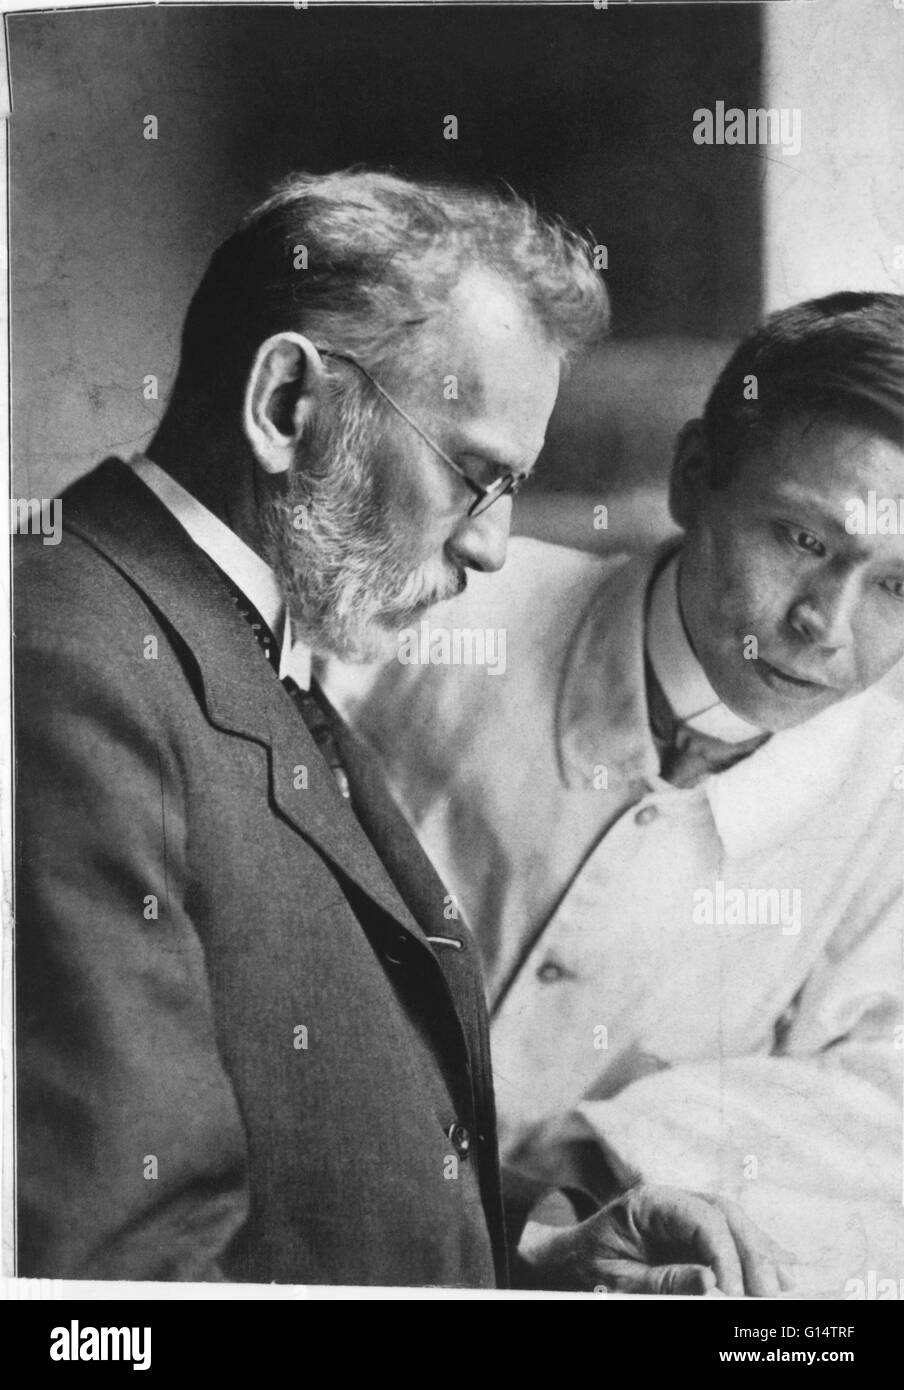 Ehrlich and Hata. Portrait of Paul Ehrlich (1854-1915) and Sahachiro Hata (1873-1938), the bacteriologists from - Stock Image